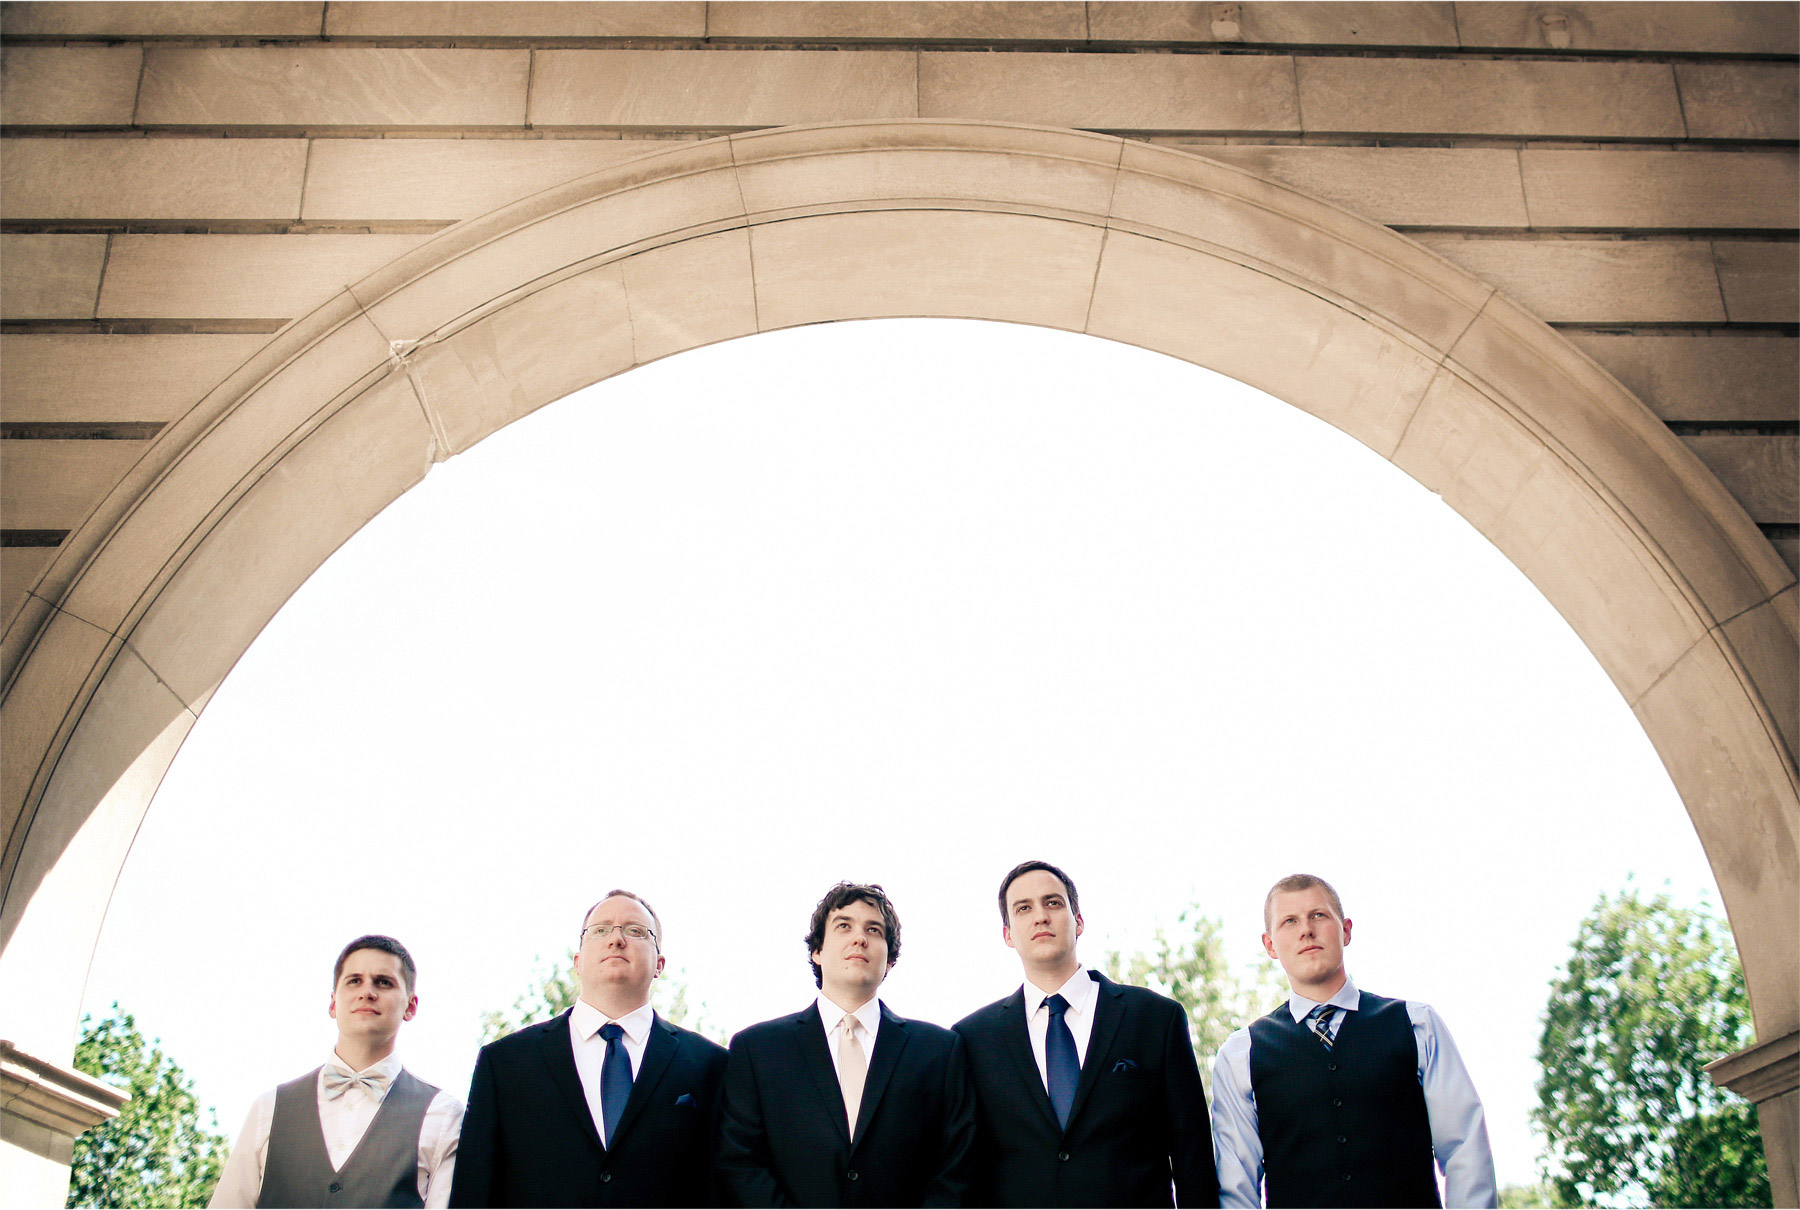 05-Minneapolis-Minnesota-Wedding-Photographer-by-Andrew-Vick-Photography-Summer-Semple-Mansion-Groom-Groomsmen-Vintage-Stephanie-and-Brady.jpg